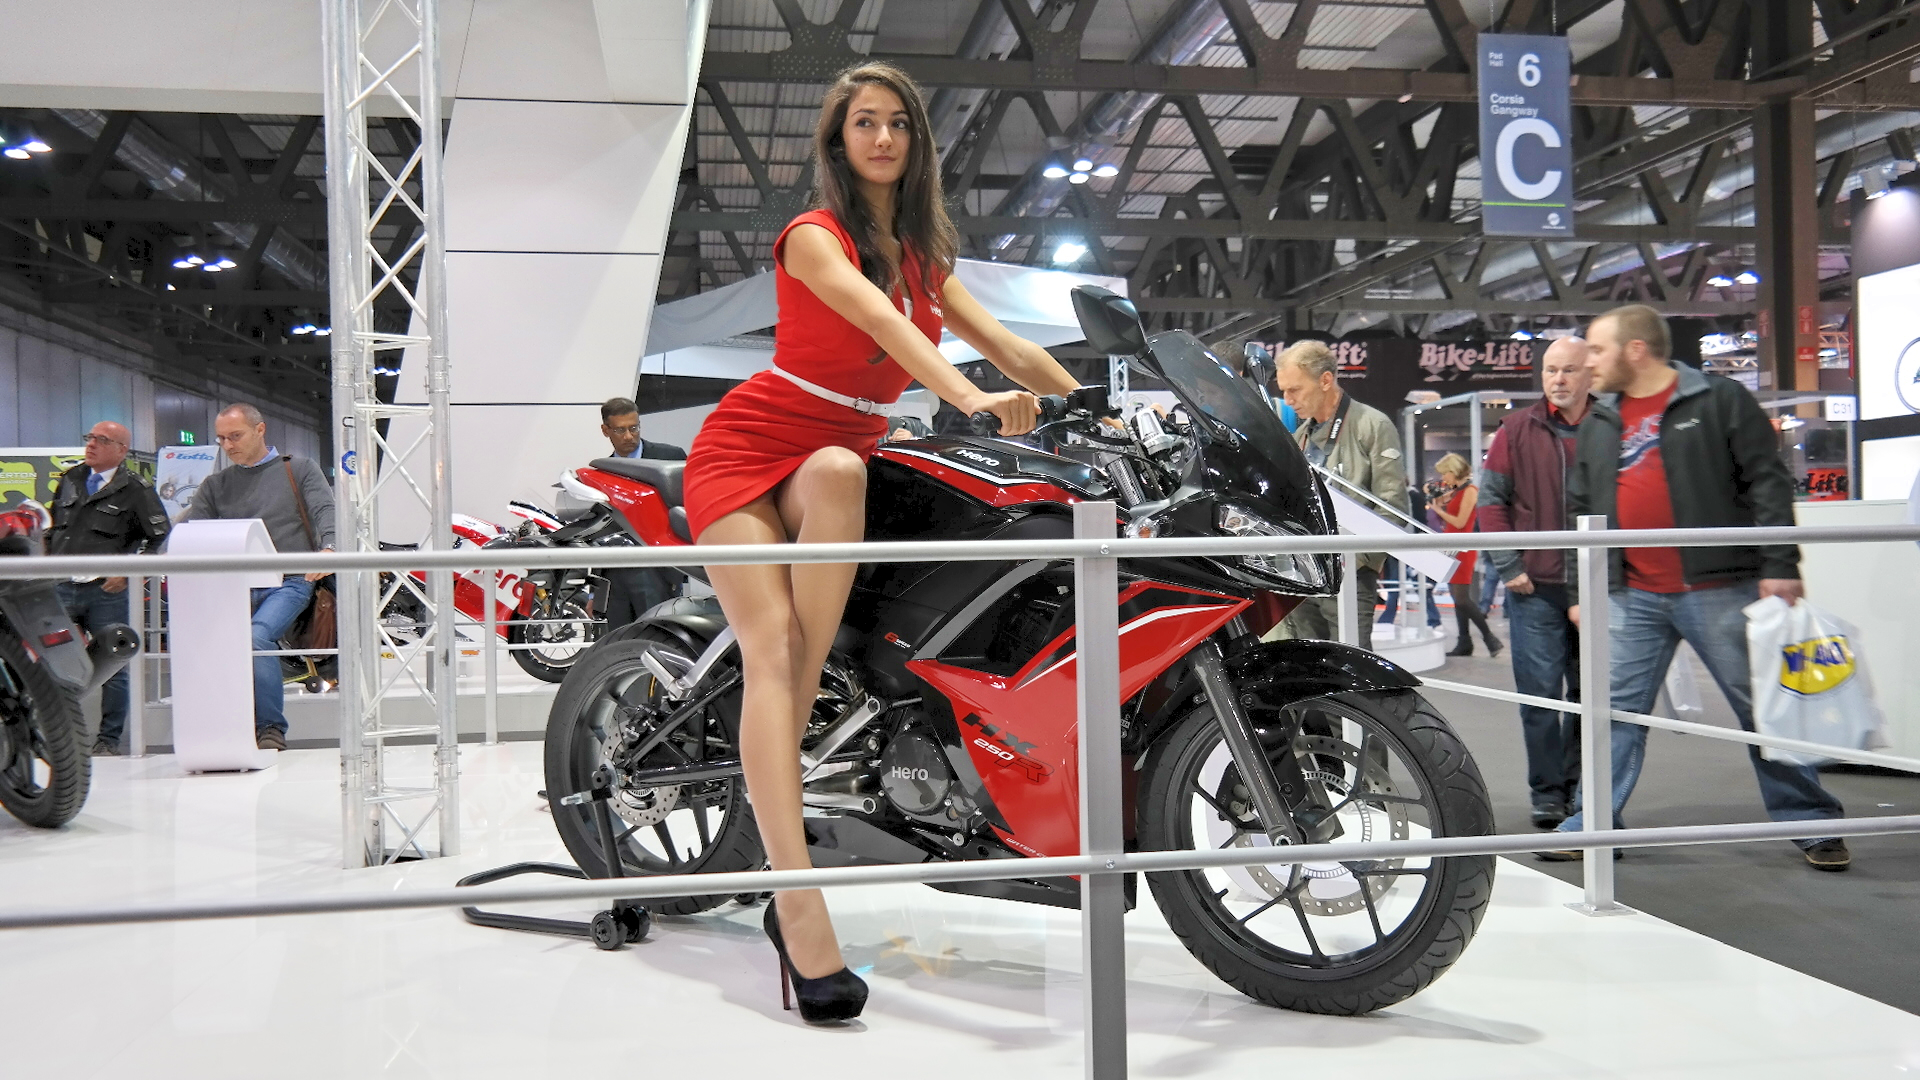 Hero Wants a Piece of the European Market with Its HX250R ...